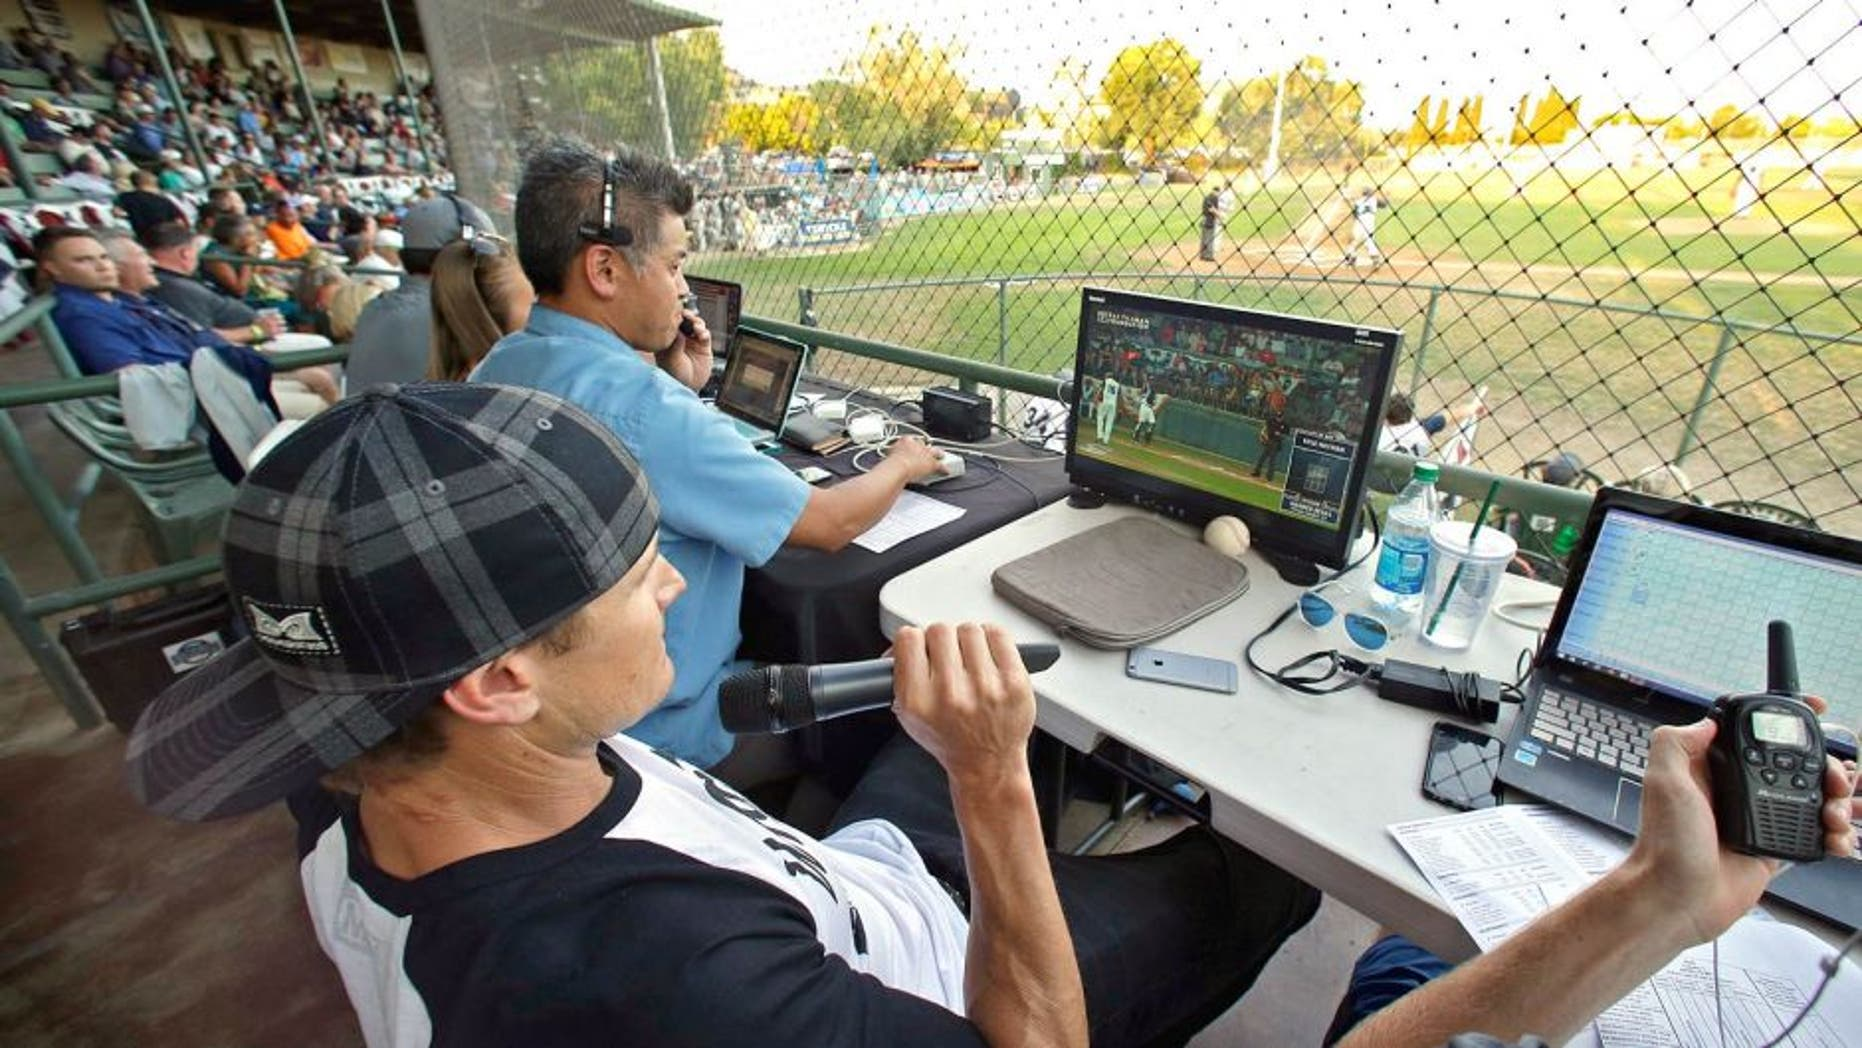 Former major league outfielder Eric Byrnes uses a computerized video system to call balls and strikes at an independent minor league baseball game between the San Rafael Pacifics and Vallejo Admirals Tuesday, July 28, 2015, in San Rafael, Calif. On Tuesday night, the computer system stood in for pitch calls in what is considered to be the first professional game without the umpire making those decisions. A full umpiring crew will be there for everything else. (AP Photo/Eric Risberg)